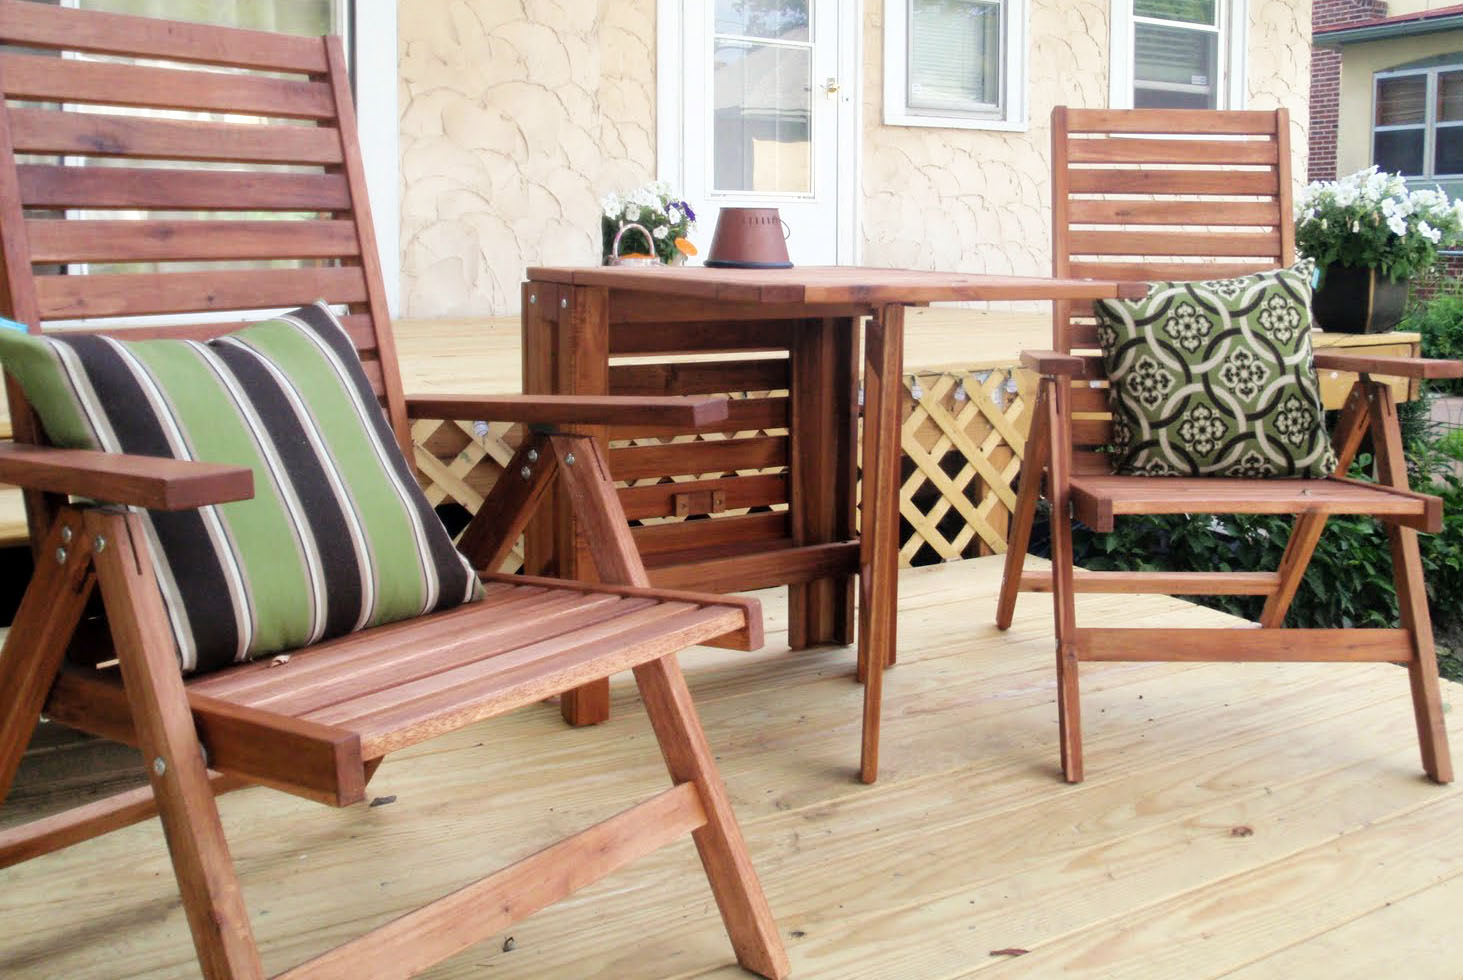 Small balcony furniture option homesfeed for Outside balcony furniture